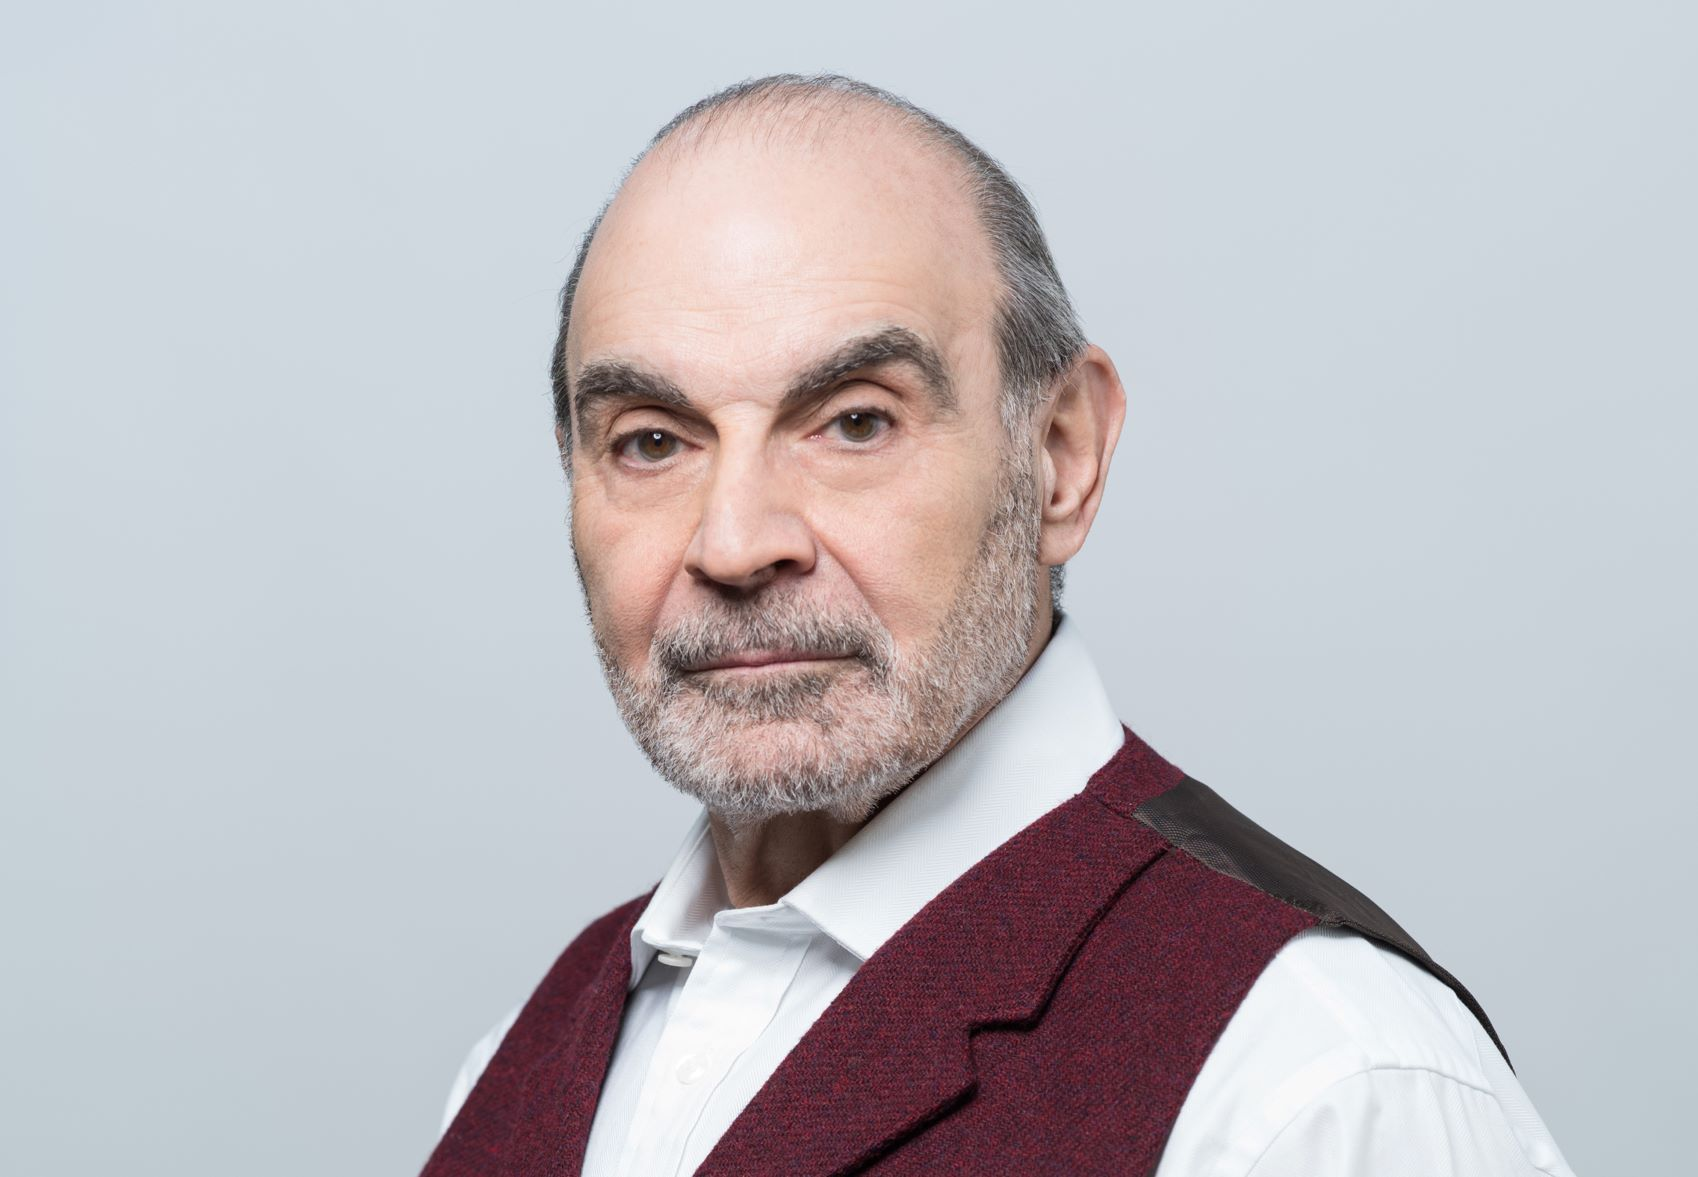 David Suchet: 'Keeping fit will hopefully give me 10 more years of life as an actor'